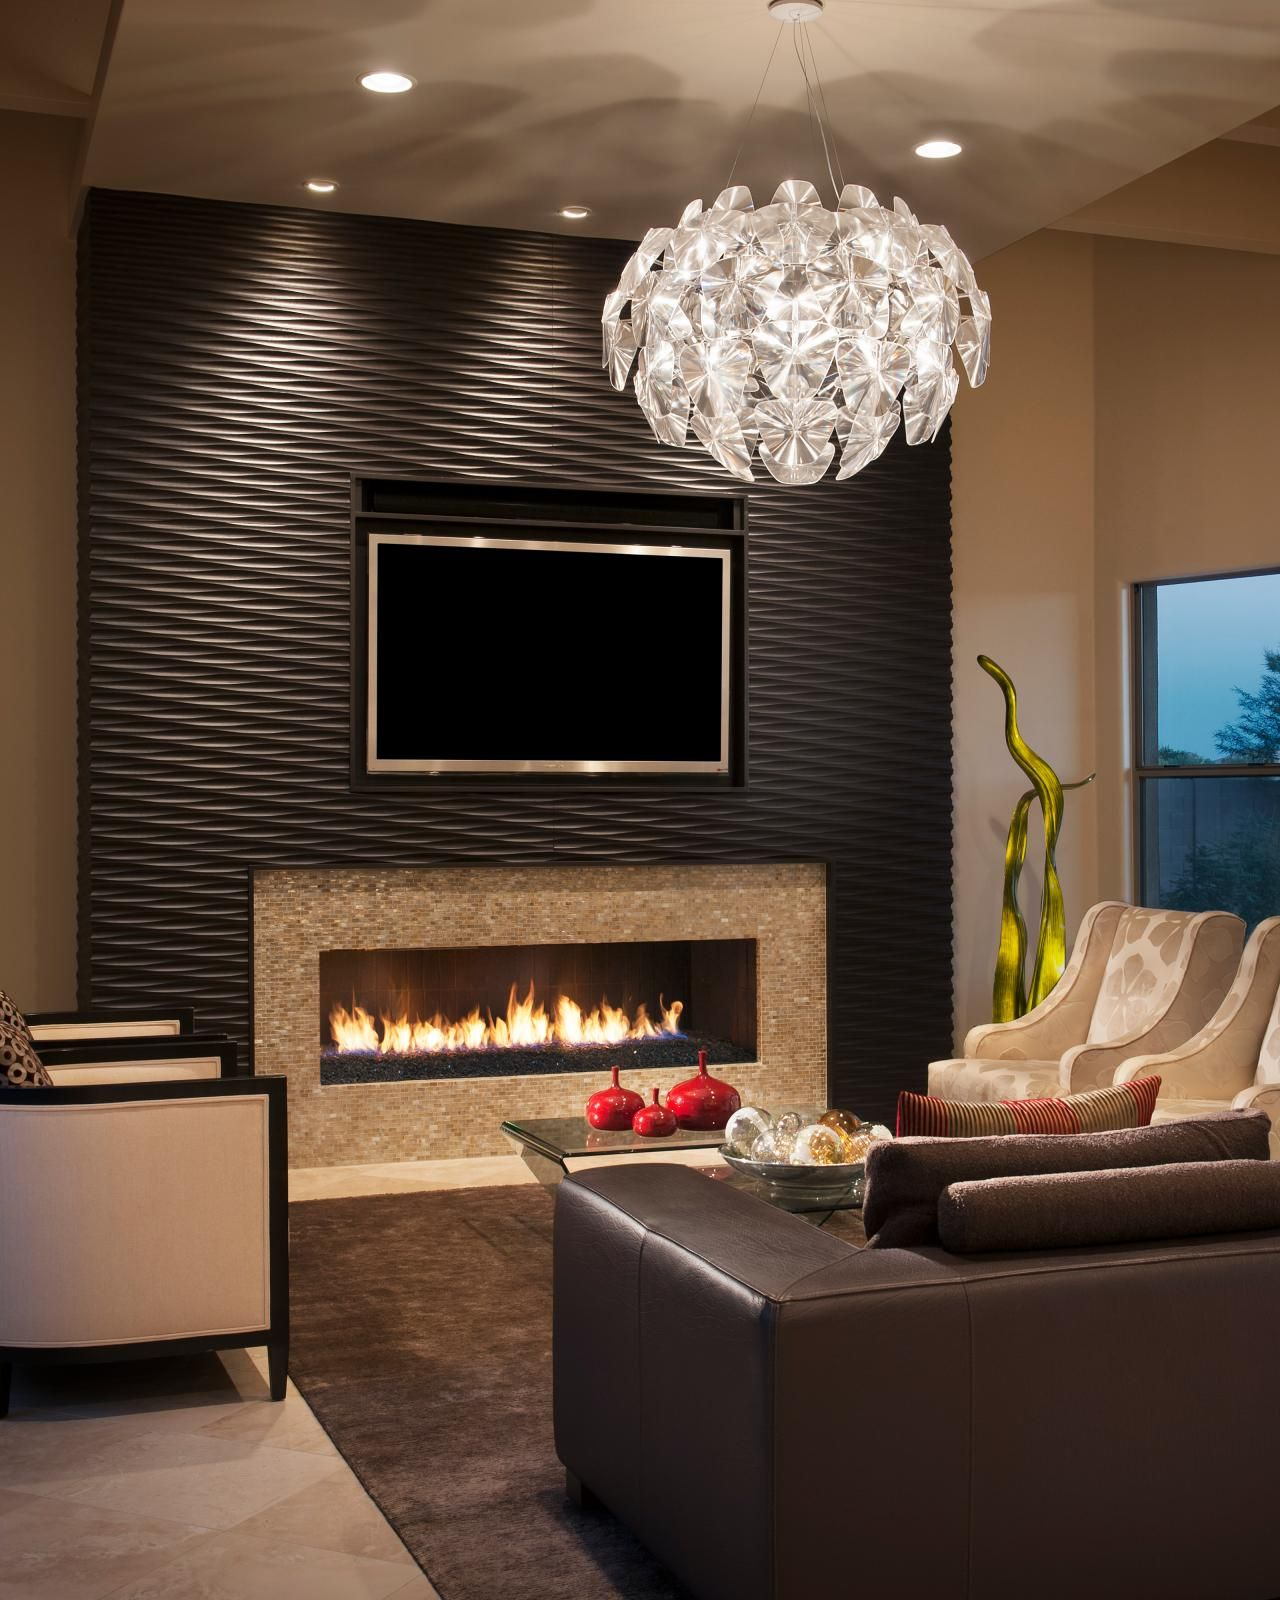 Hgtv Likes This Modern Neutral Living Room With Wood Clad Accent